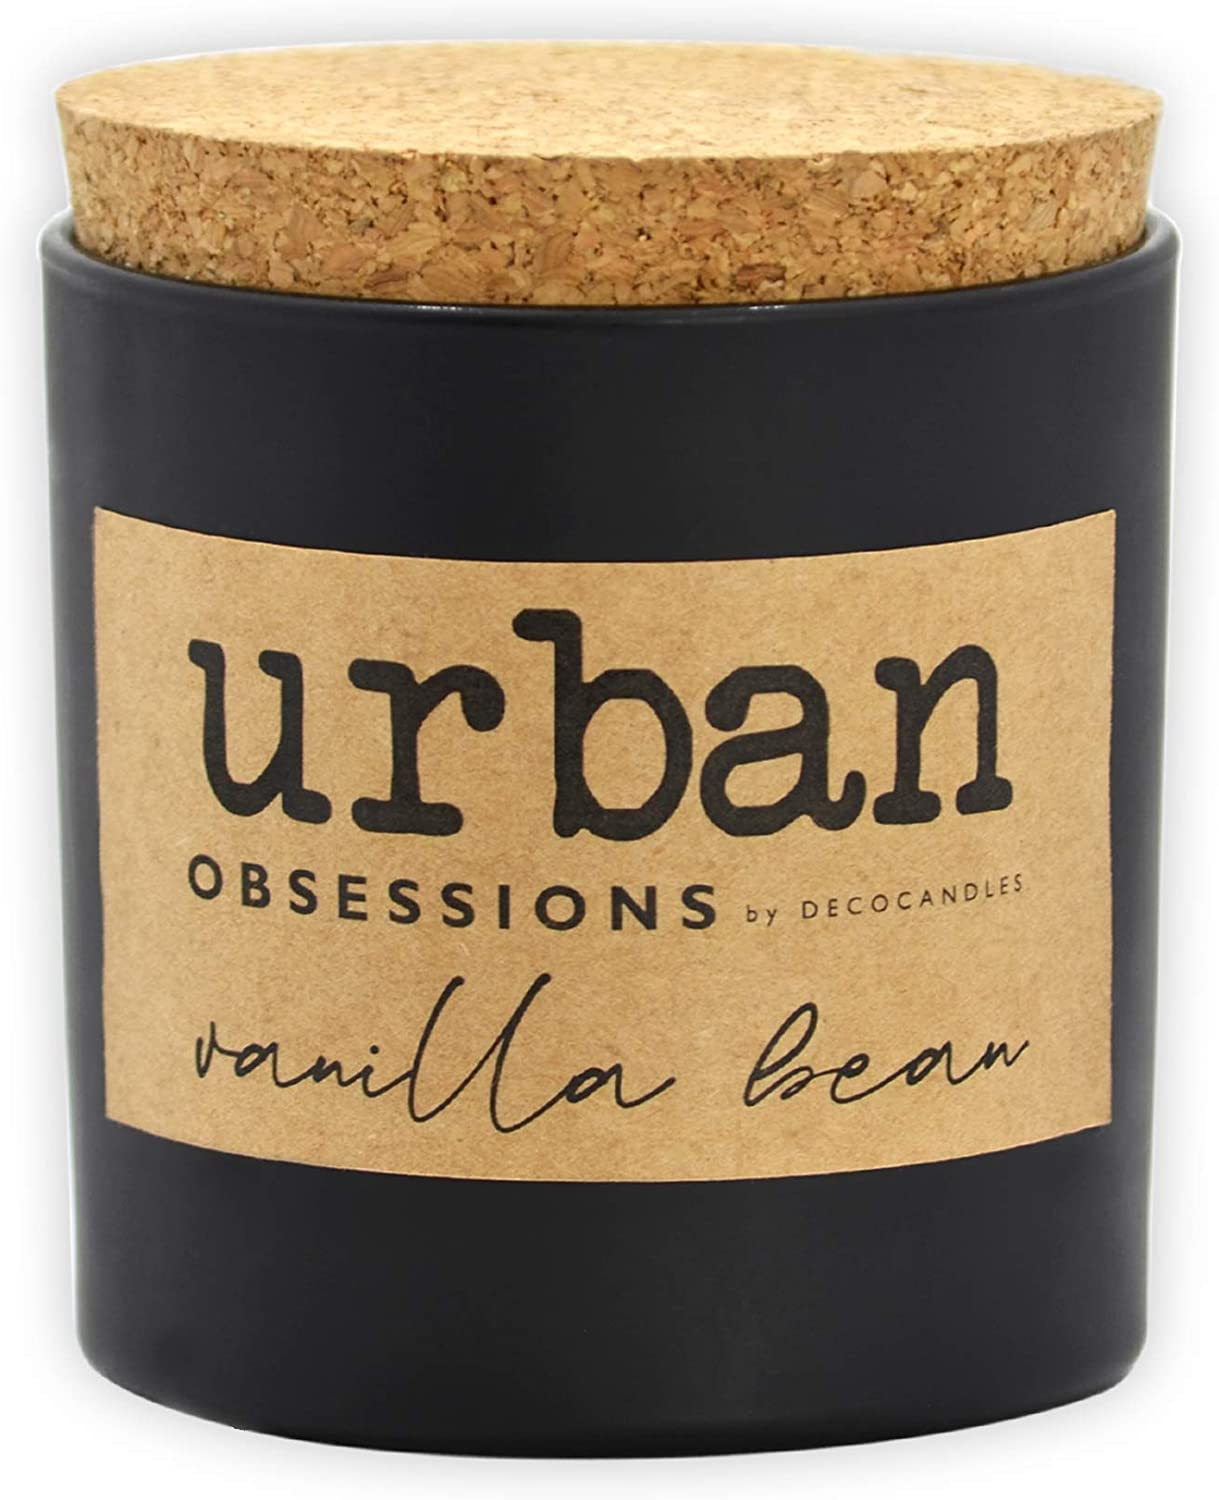 Urban Obsessions by DECOCANDLES | Vanilla Bean - Highly Scented Soy Candle - Long Lasting - Hand Poured in USA 6.7 Oz. w/Cork lid